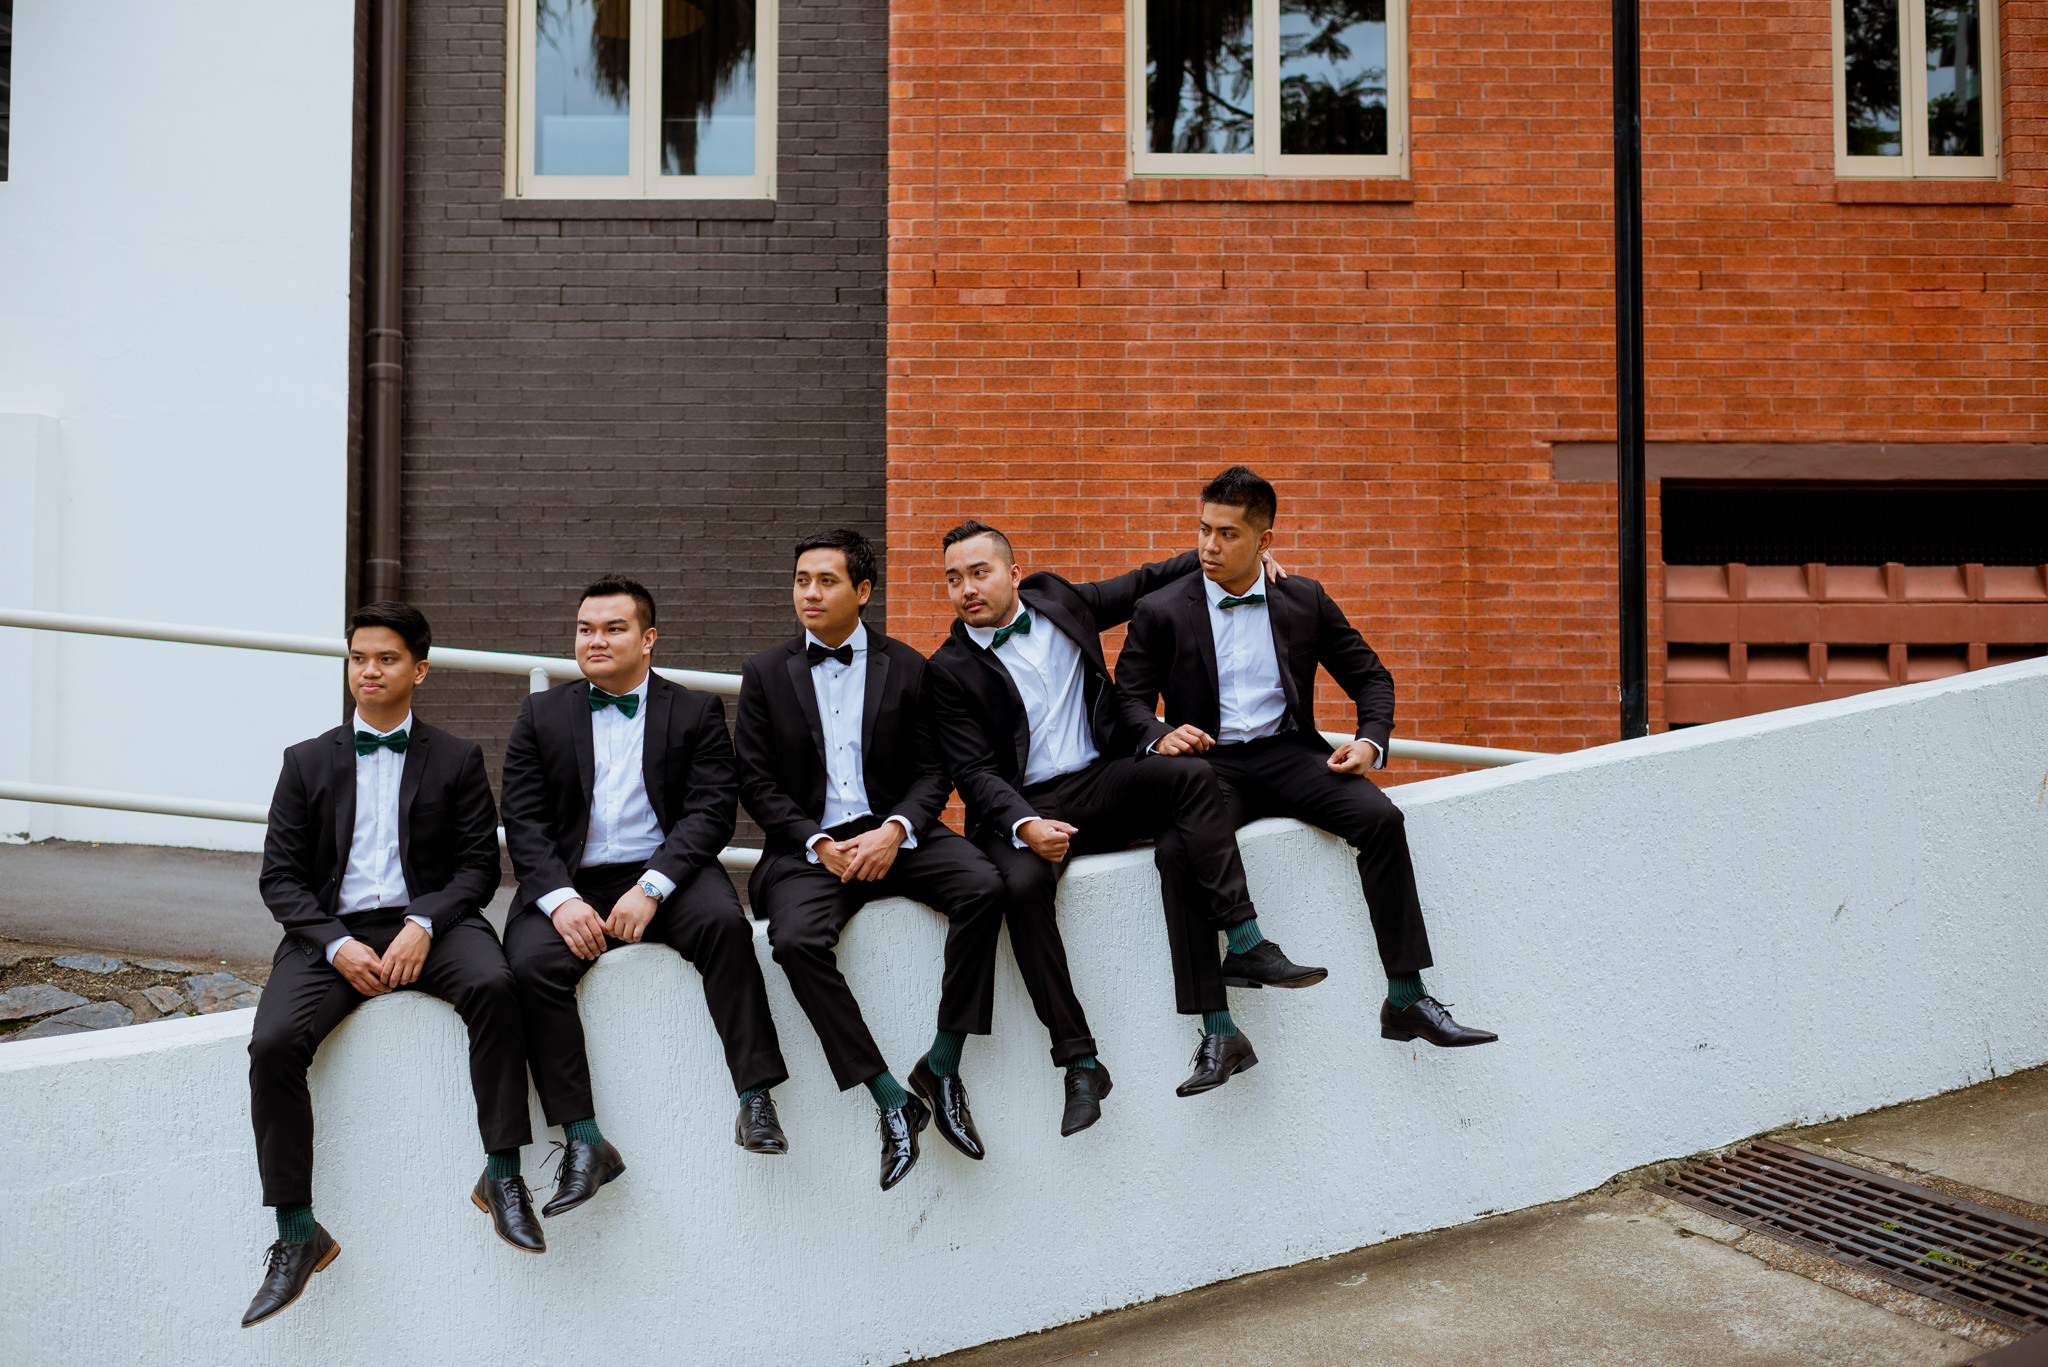 A groom and his groomsmen sit on a slanted wall in front of a brick wall